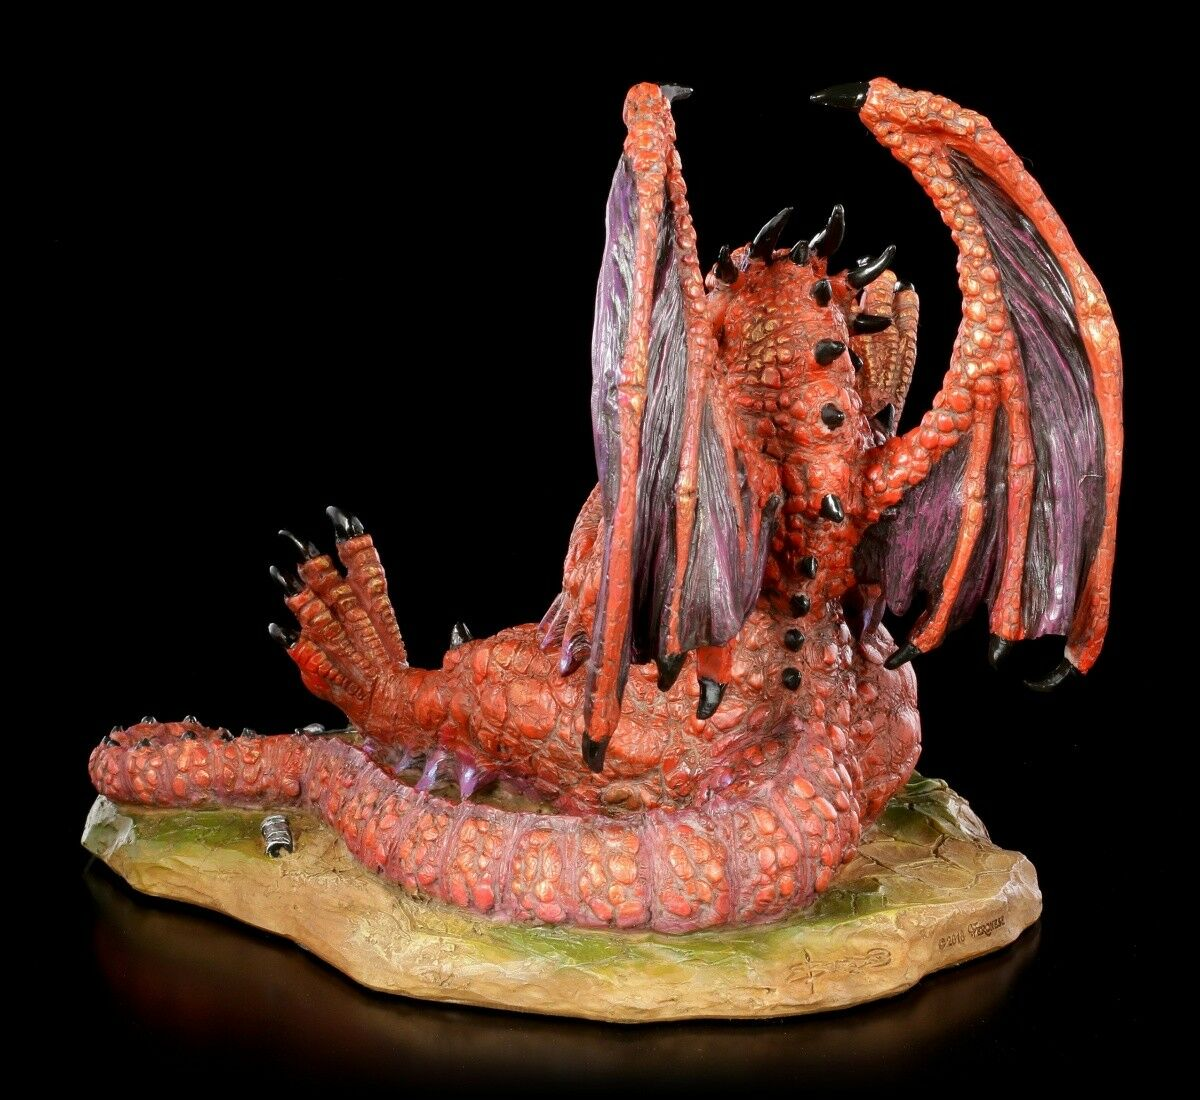 Dragon Figure - - - Lunch with a Toothpick - Ed Beard Jr.Dragon Deco Statue 05dc39